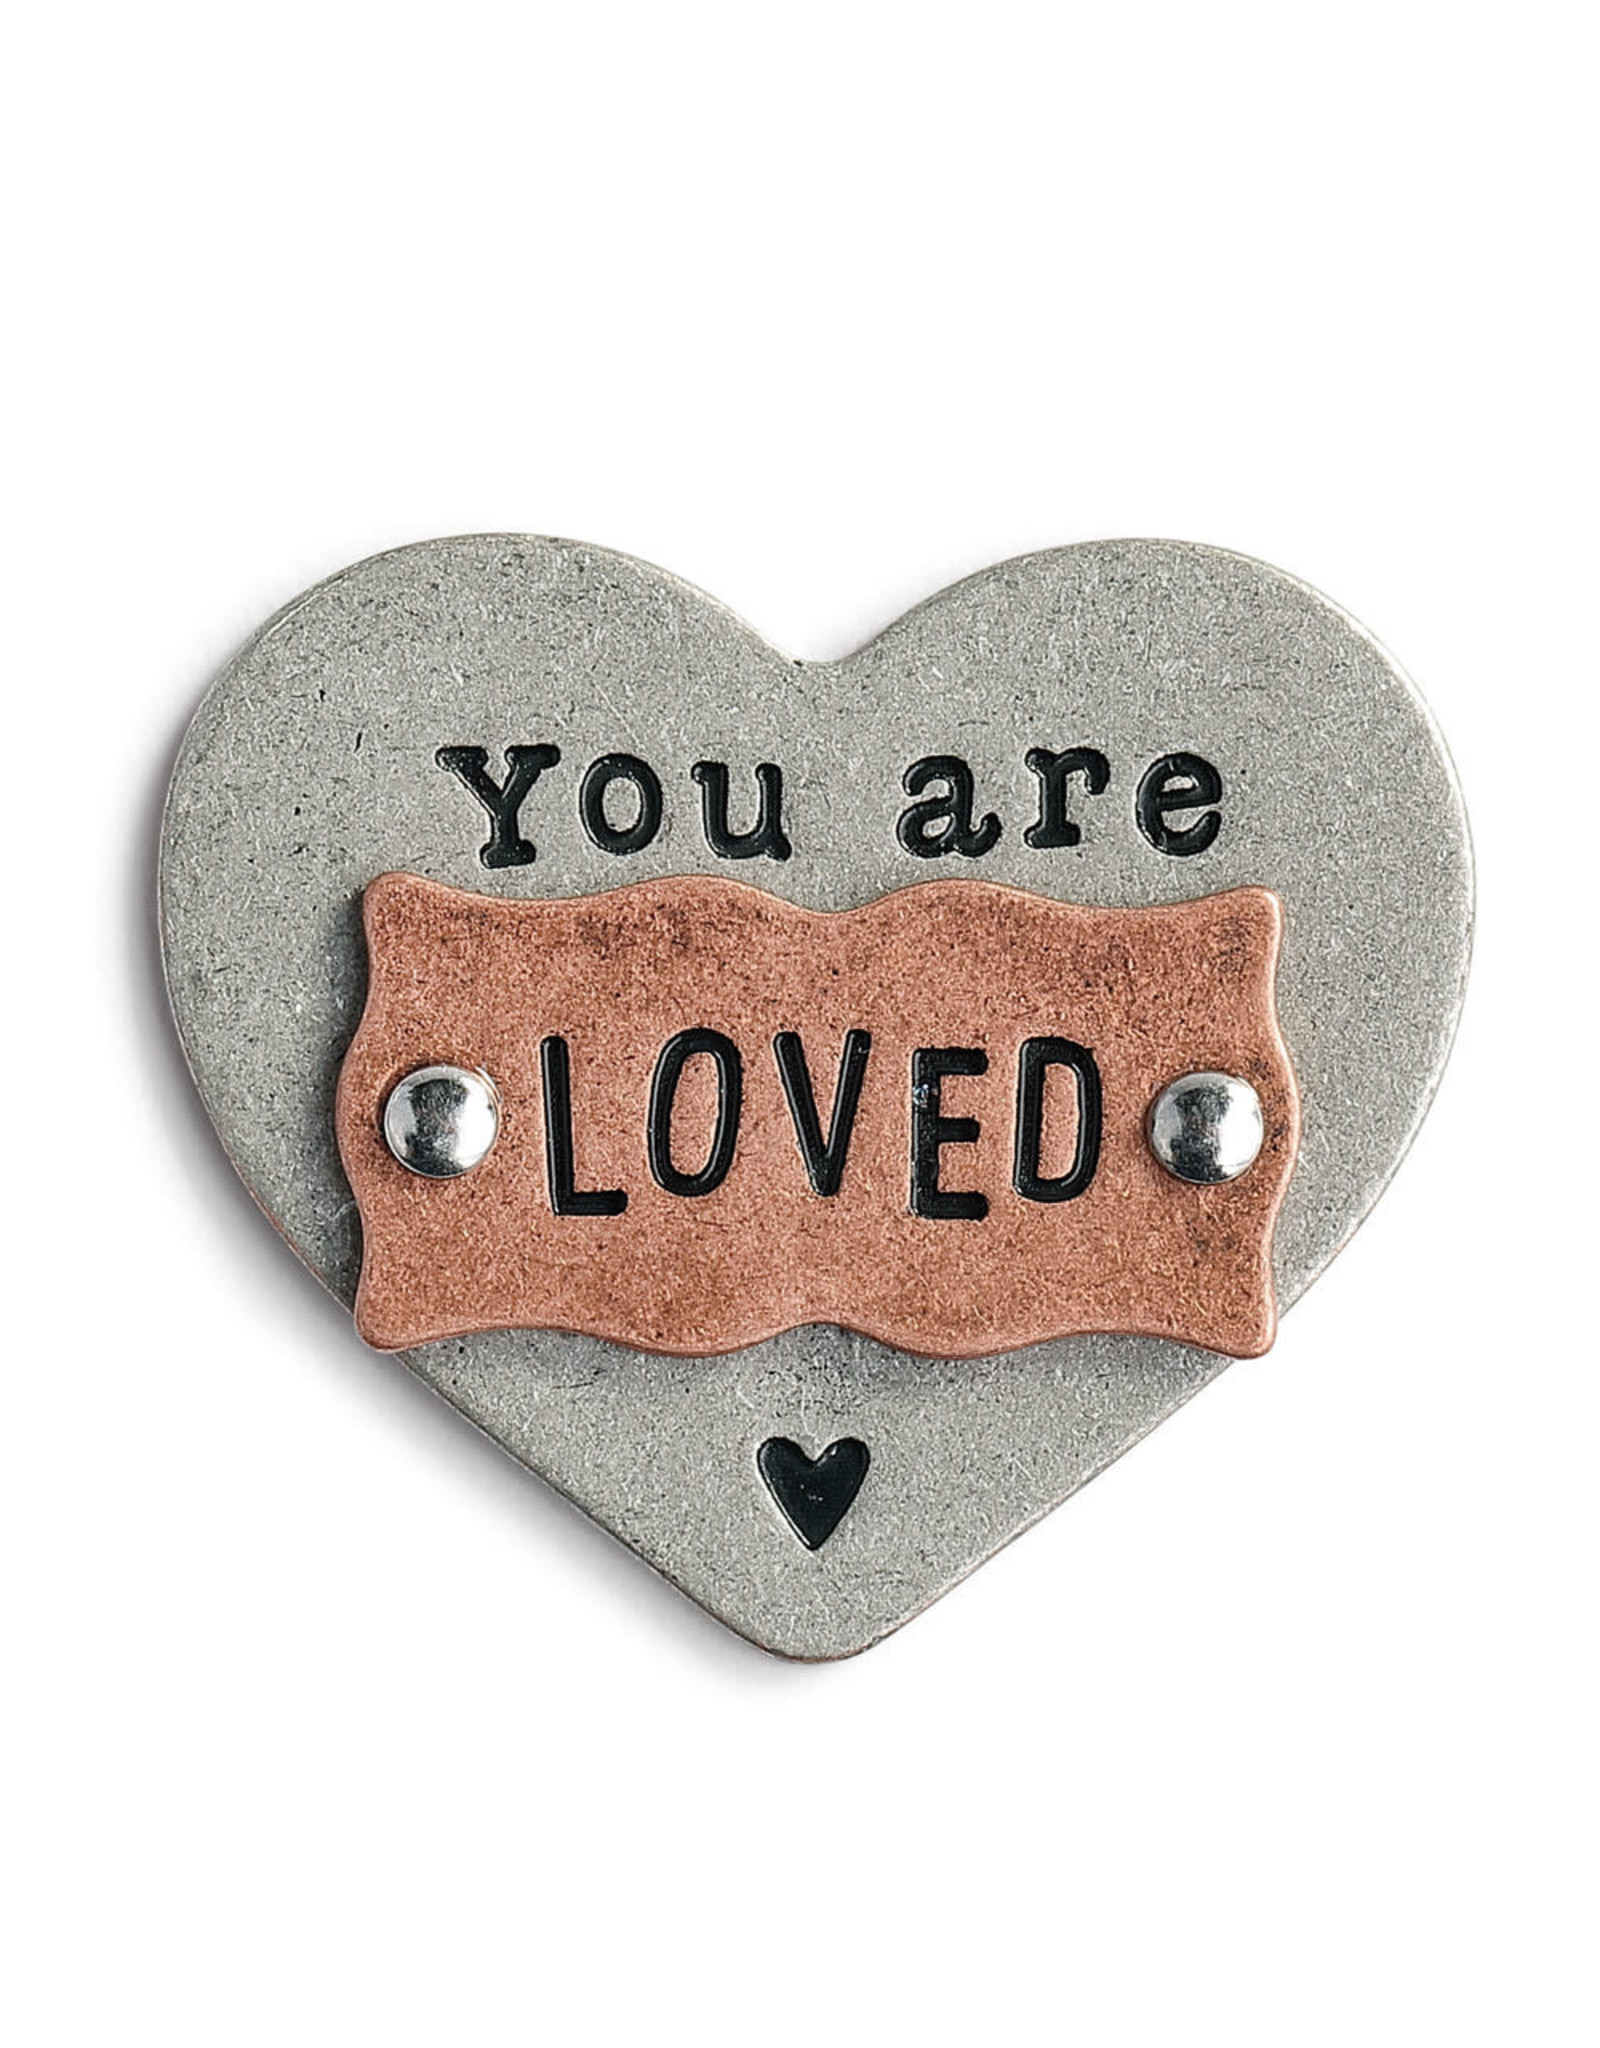 You Are Loved Heart Token